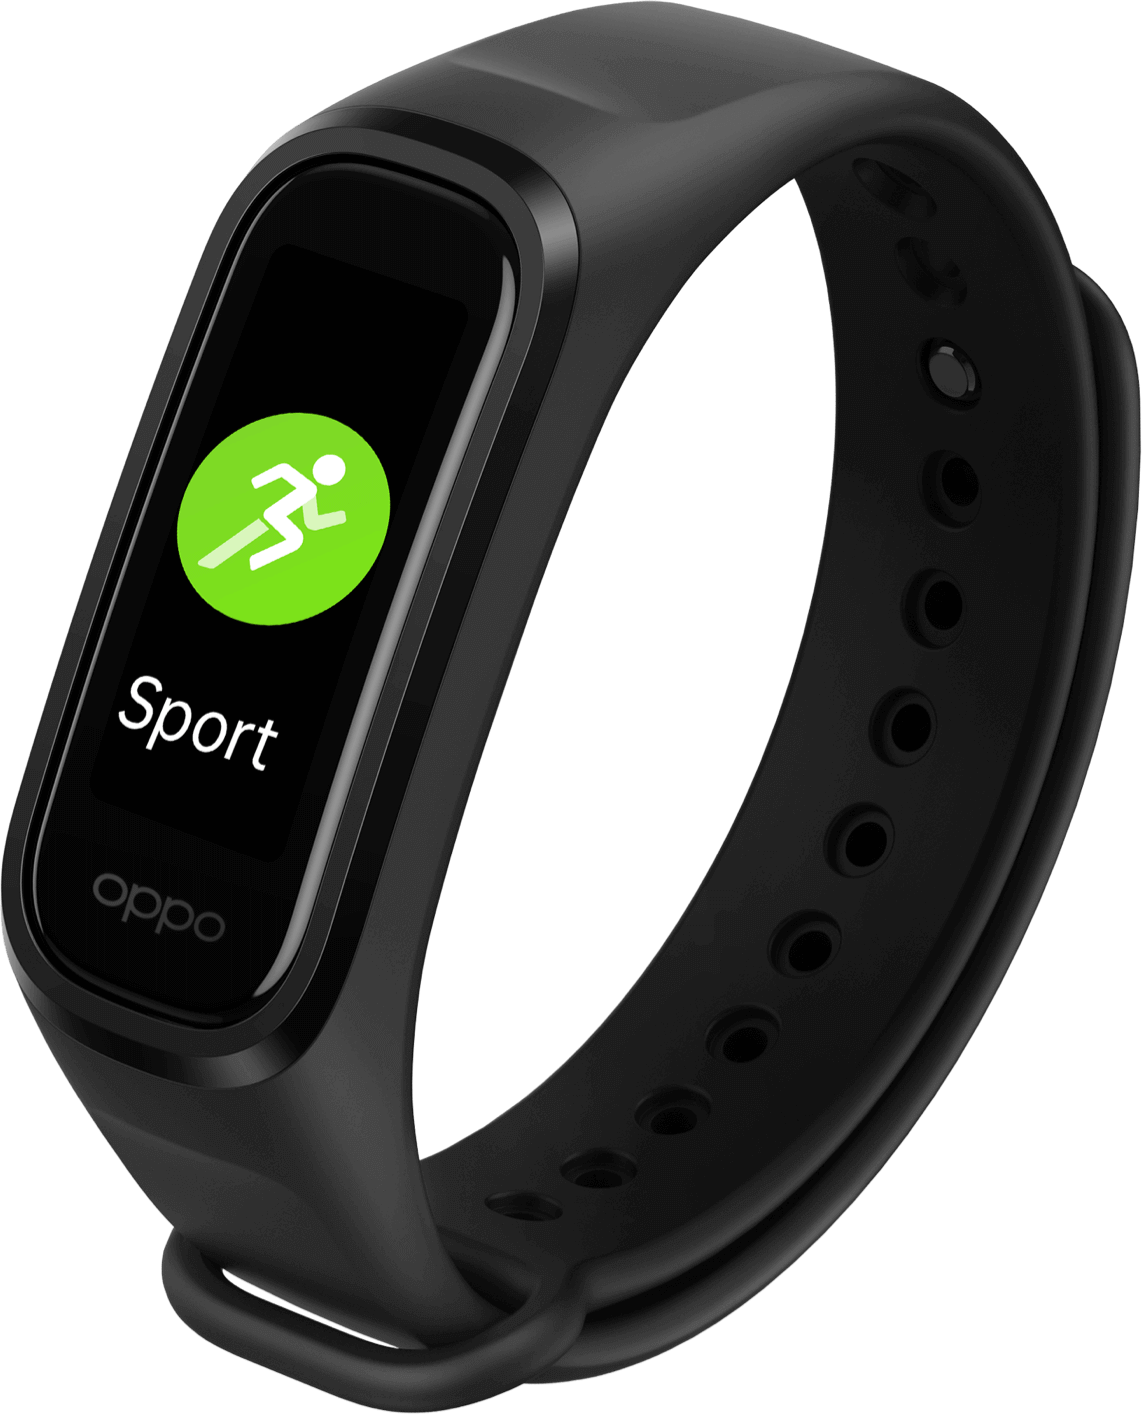 OPPO Band Activate Your Health